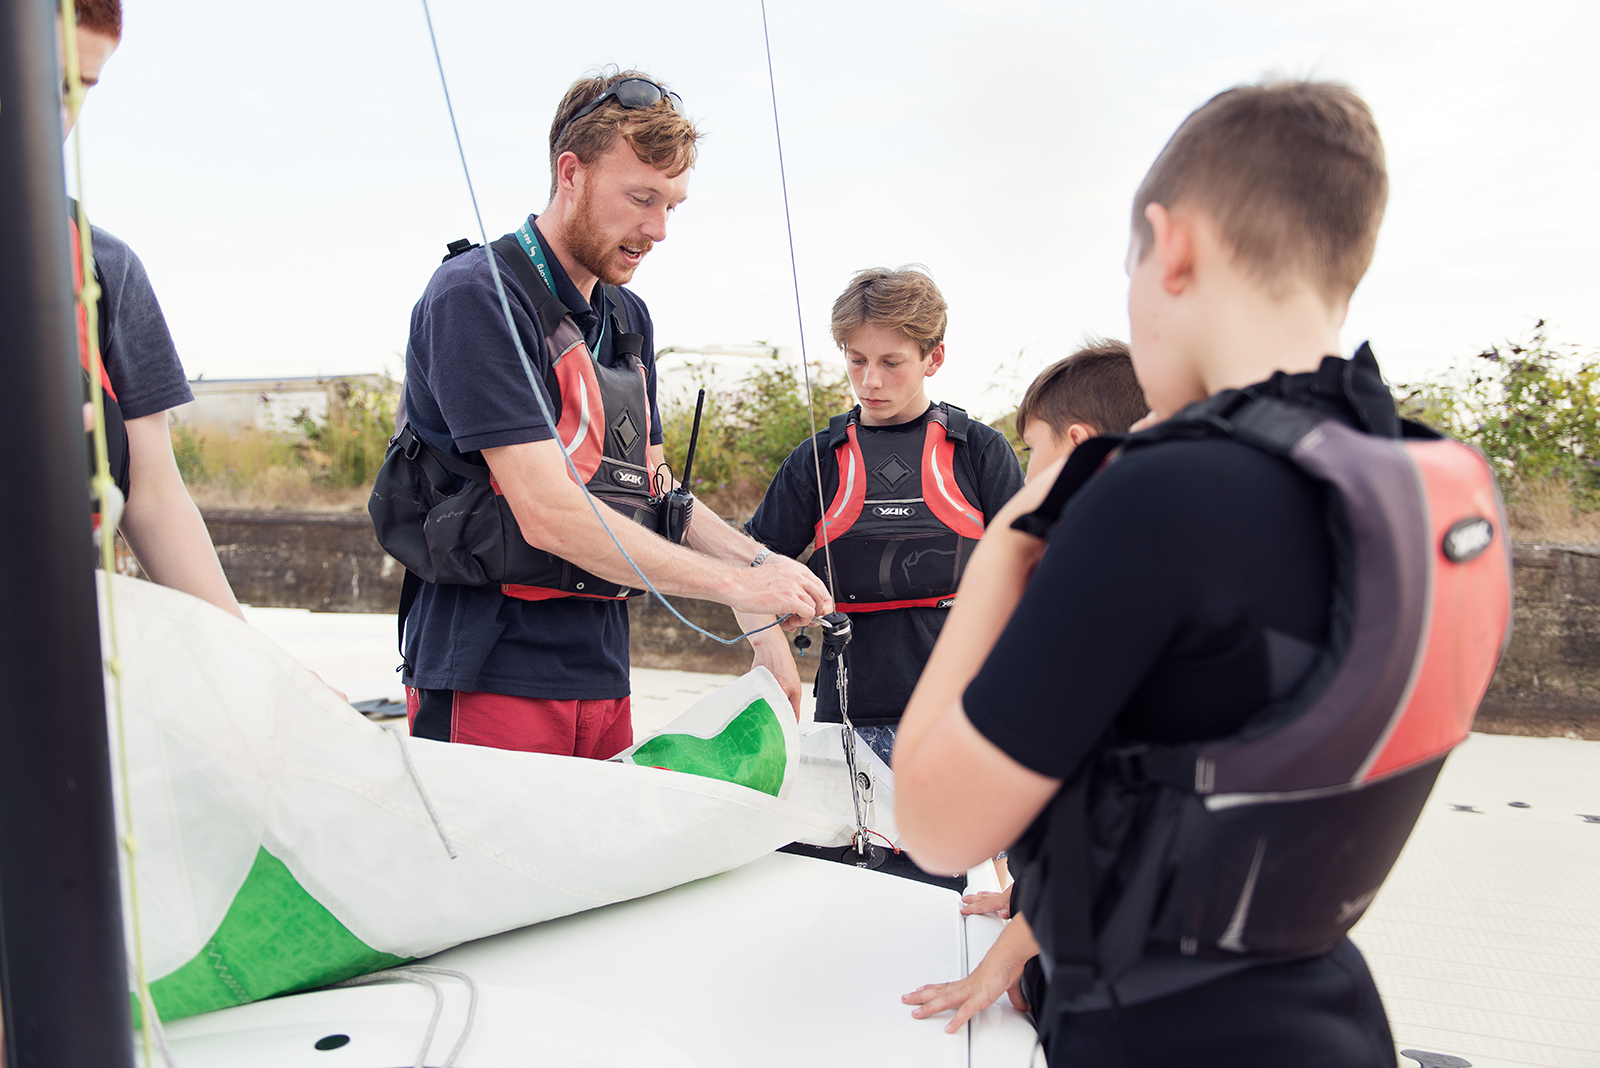 Instructor showing cadets how to attach a sail to a boat